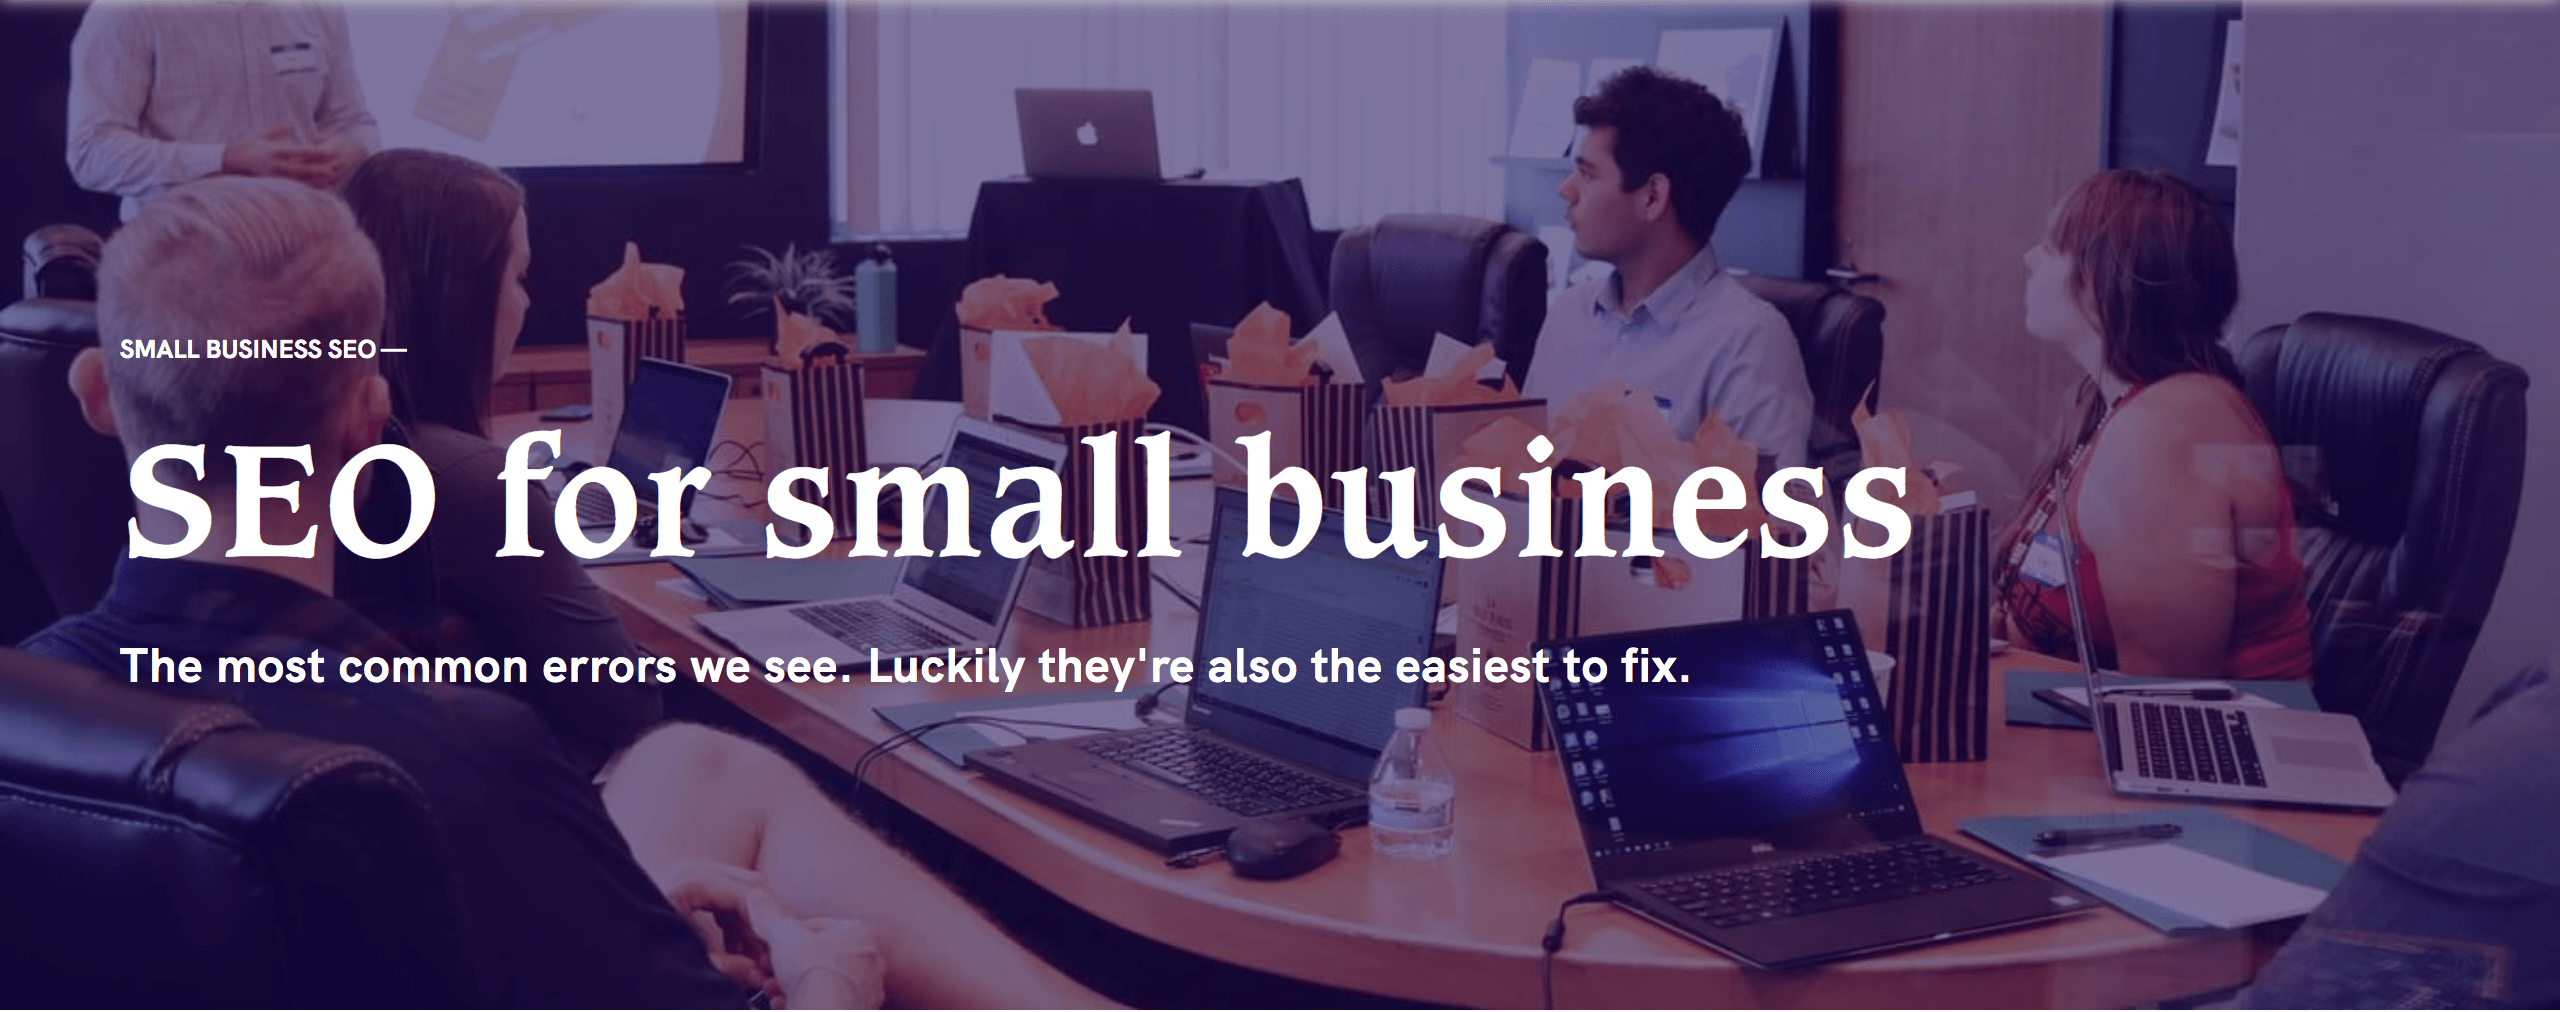 seo for small business header image